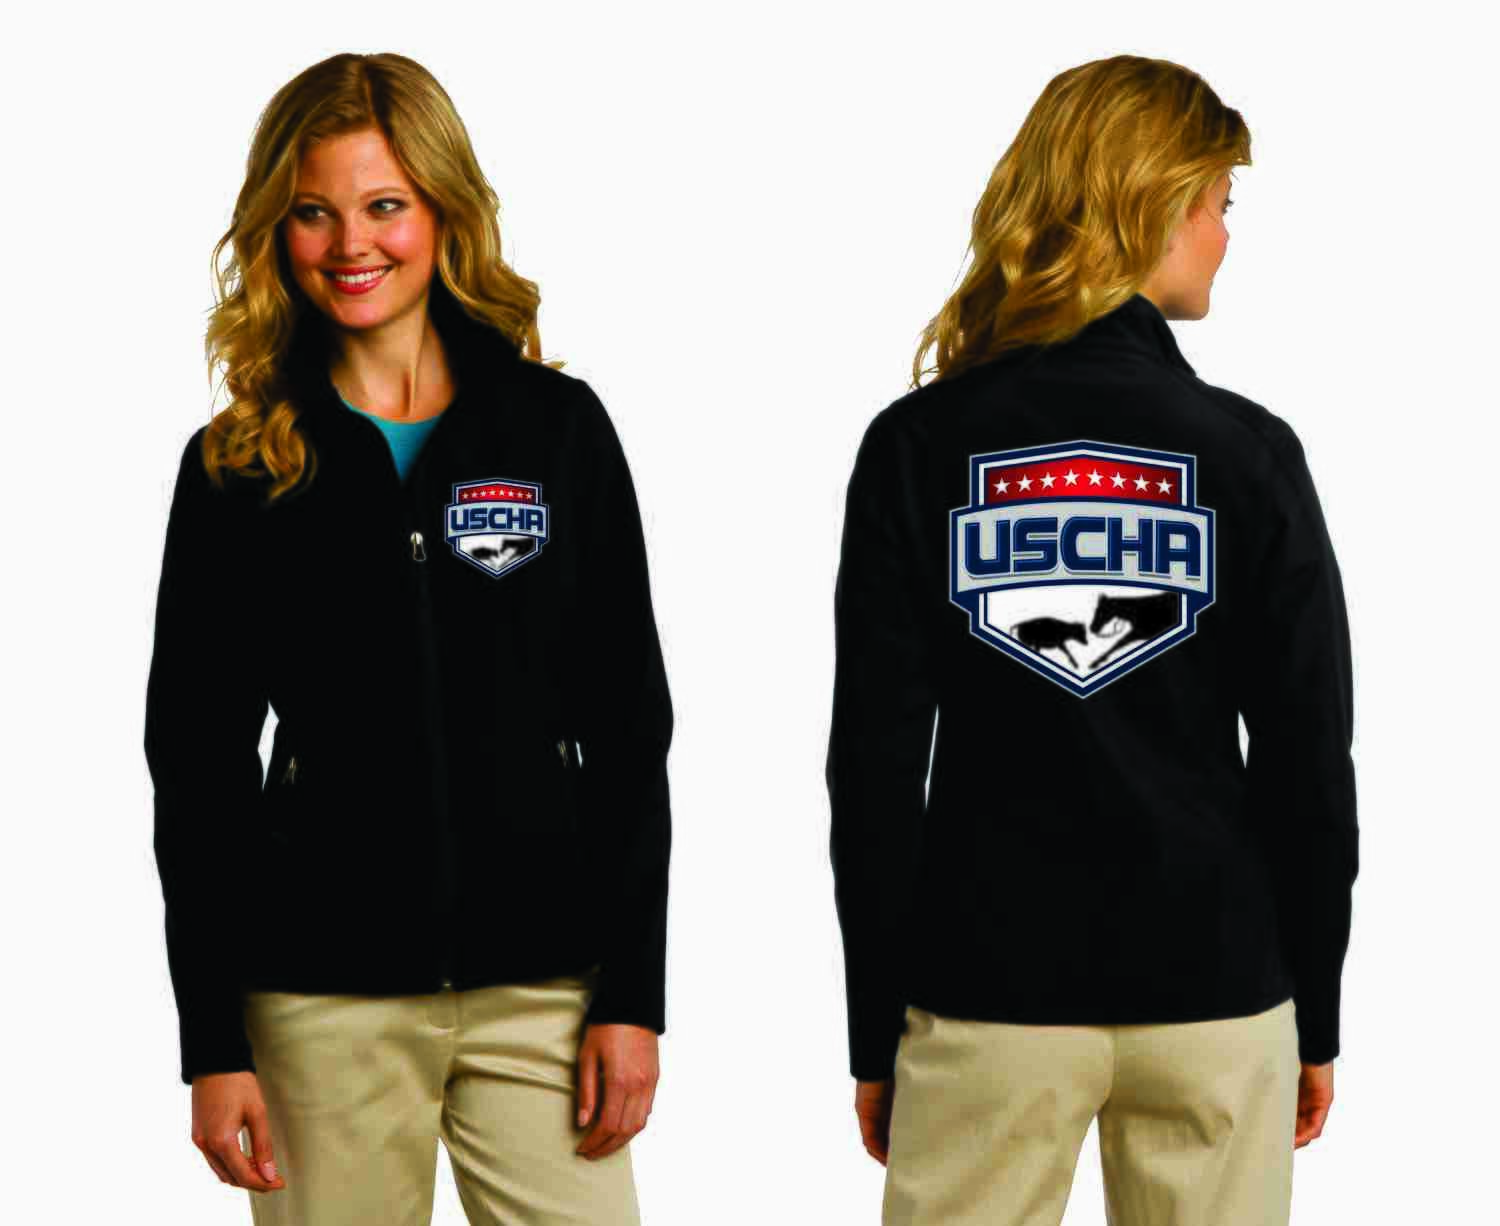 Ladies Soft Shell USCHA Jacket